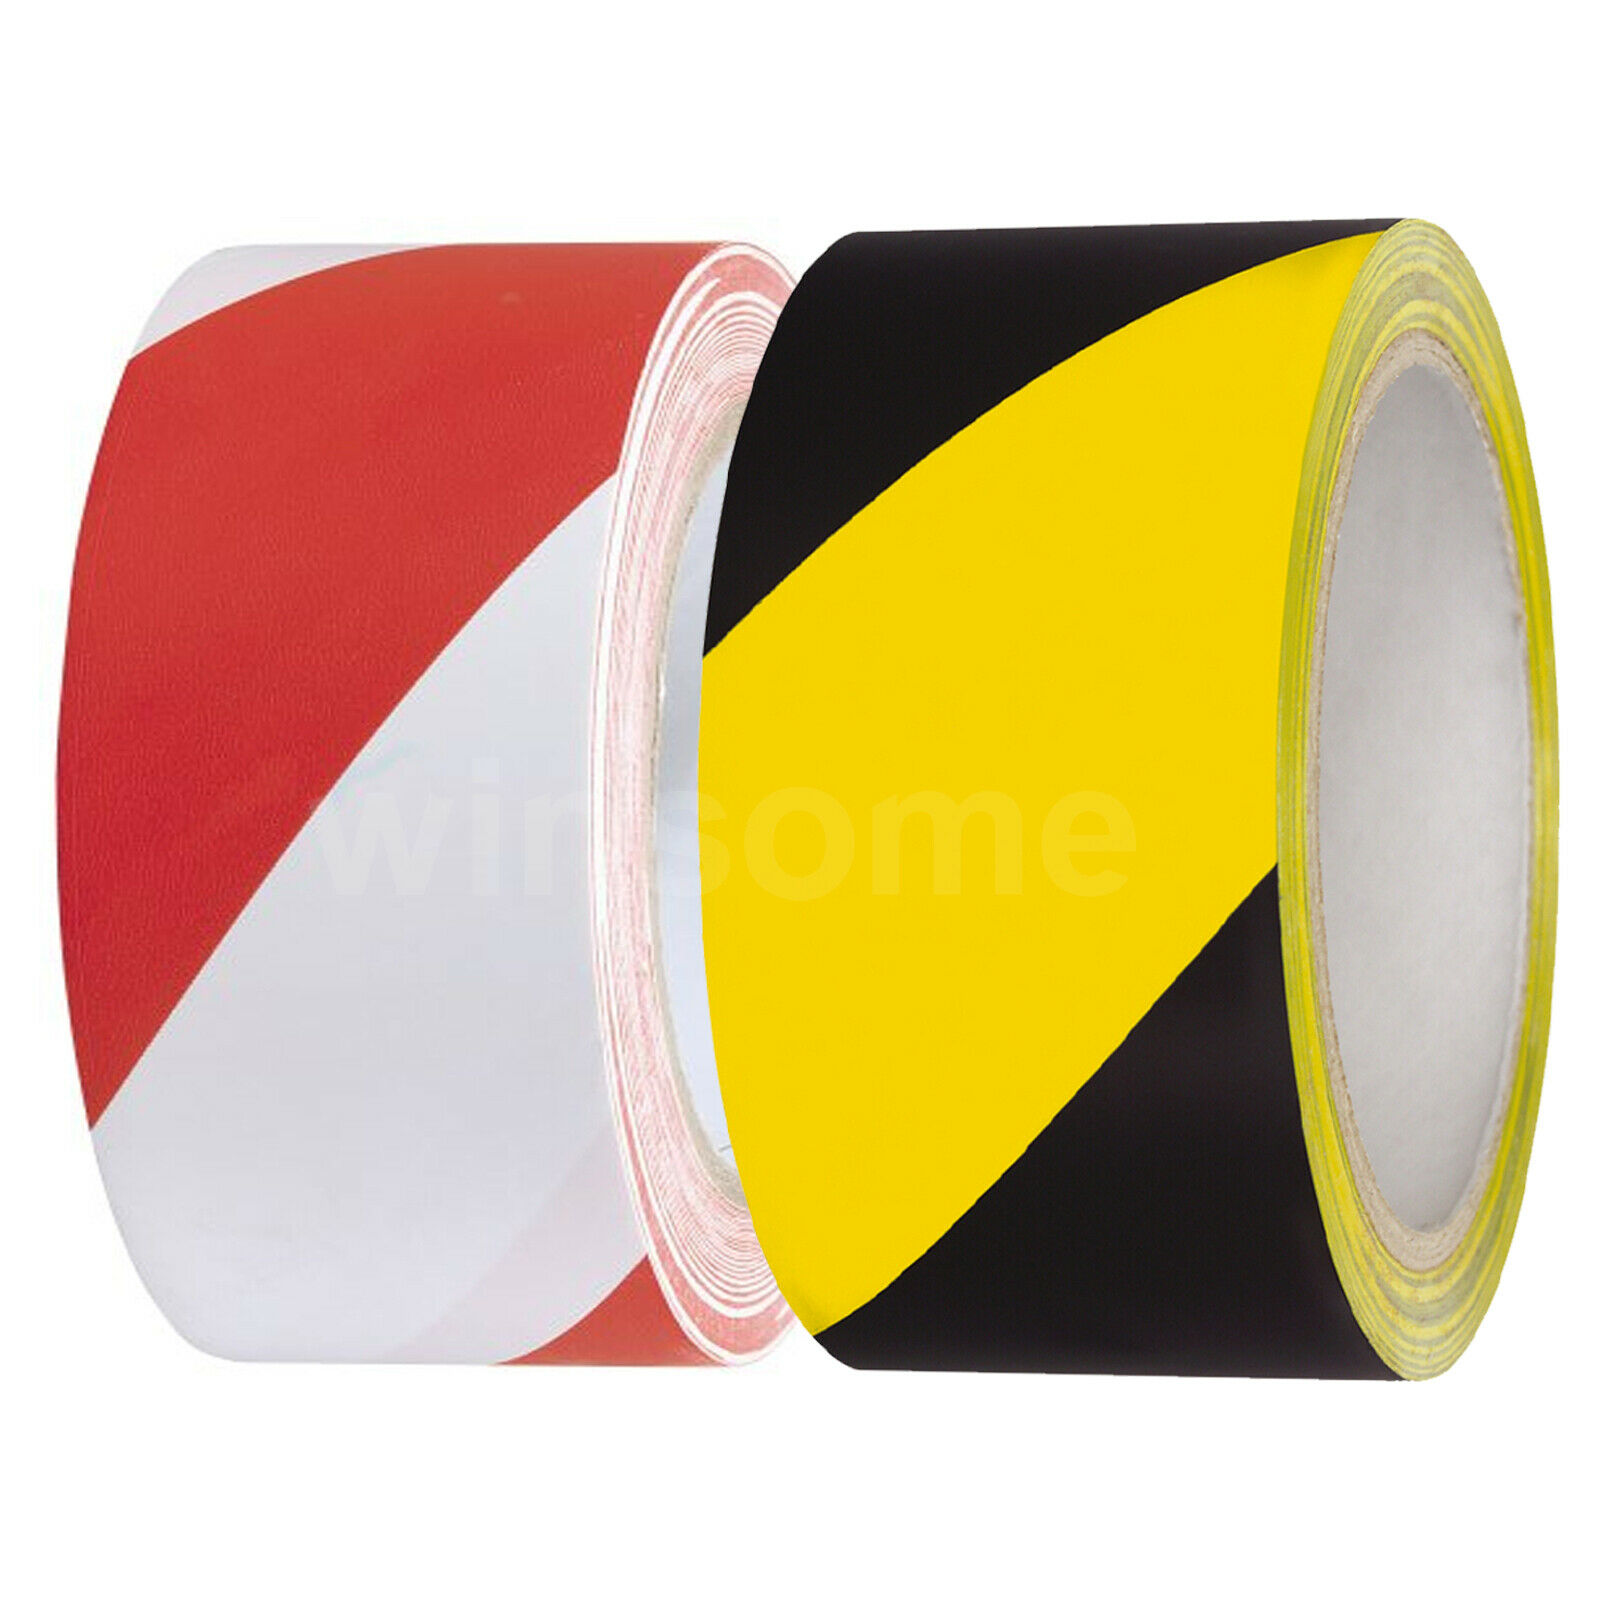 Warning Safety Tape Red White Hazard Tape Adhesive Marking Barrier Tape For walls floors pipes and equipment 33 m x 50 mm